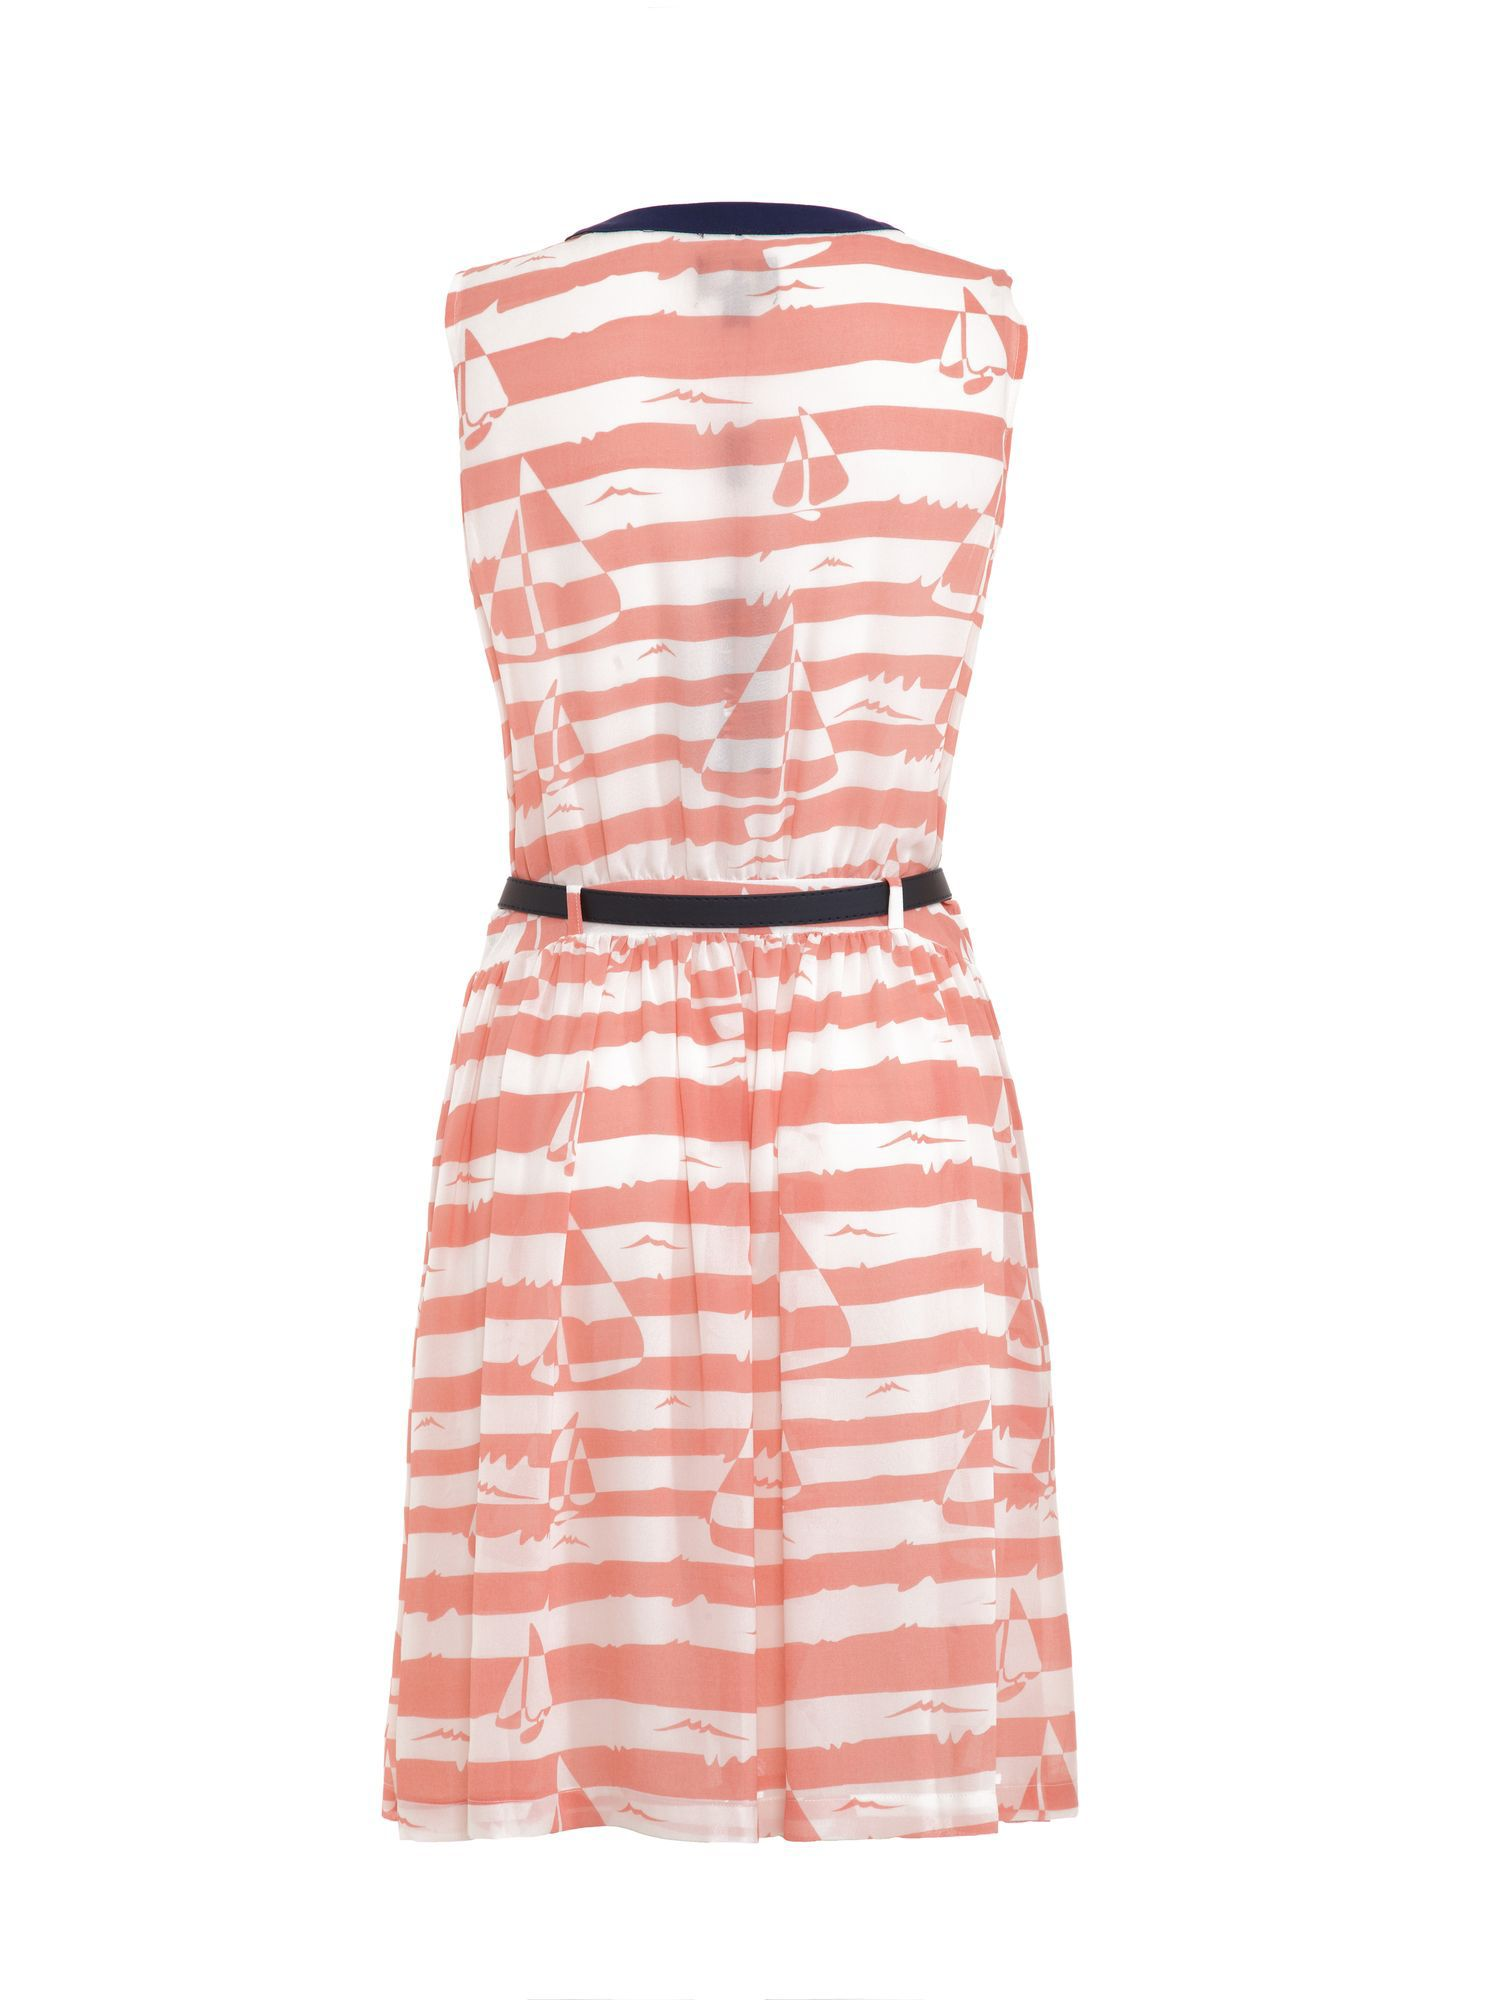 Boat and stripe print dress